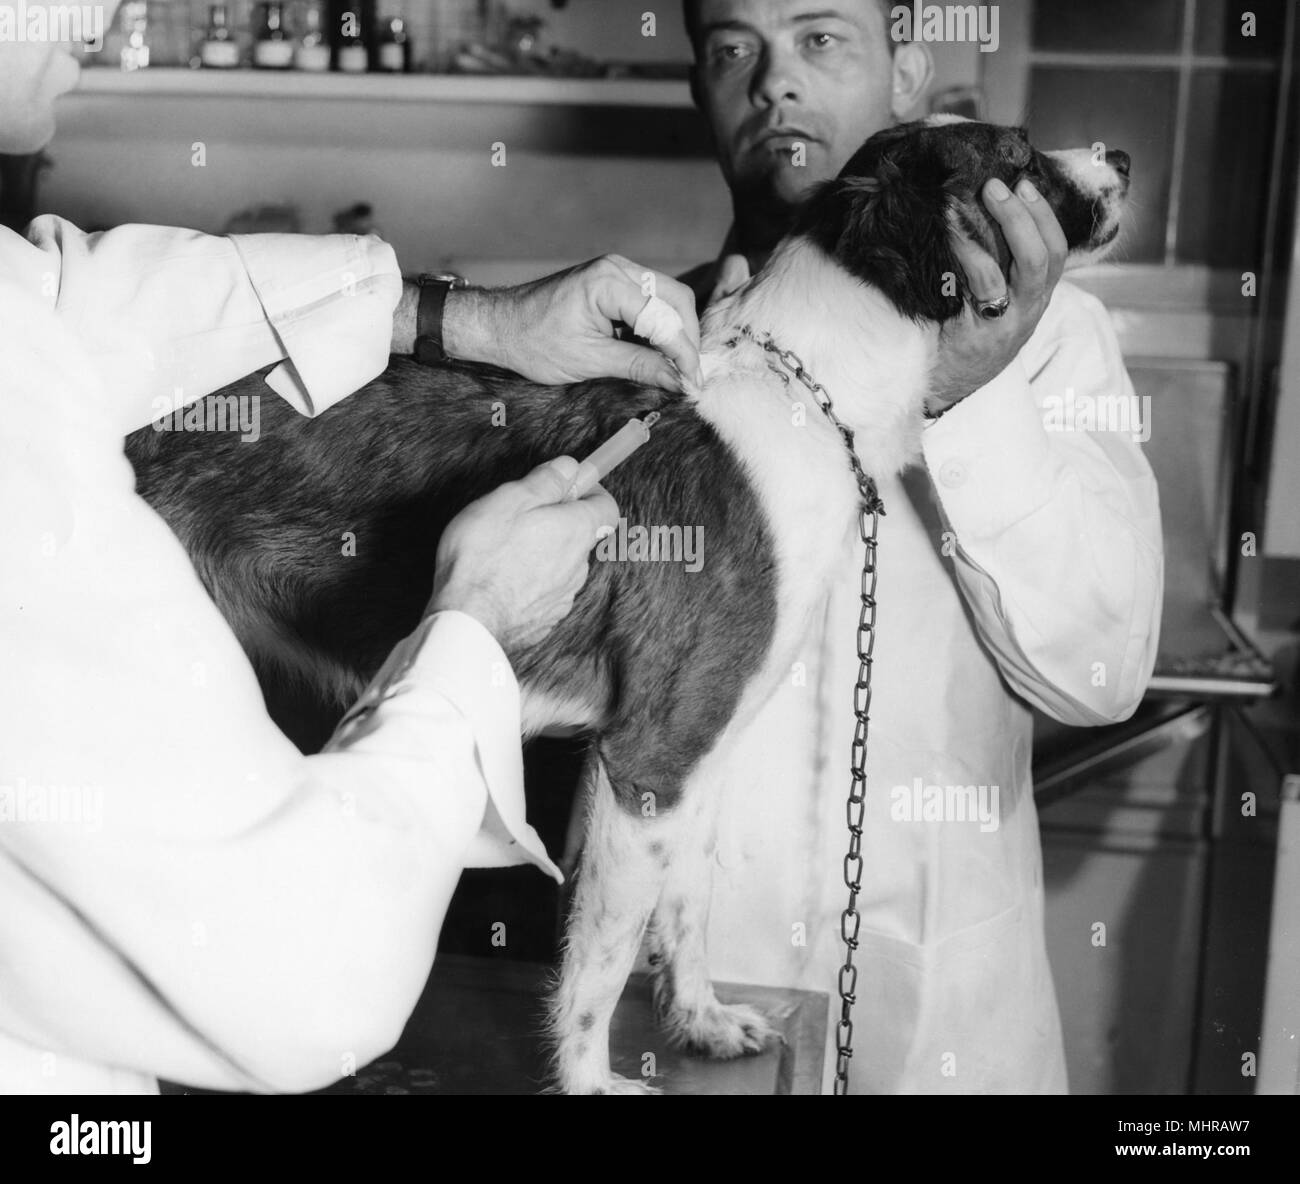 Two Centers for Disease Control (CDC) veterinarians vaccinating a dog against rabies, Atlanta, Georgia, 1968. Image courtesy Centers for Disease Control. () - Stock Image